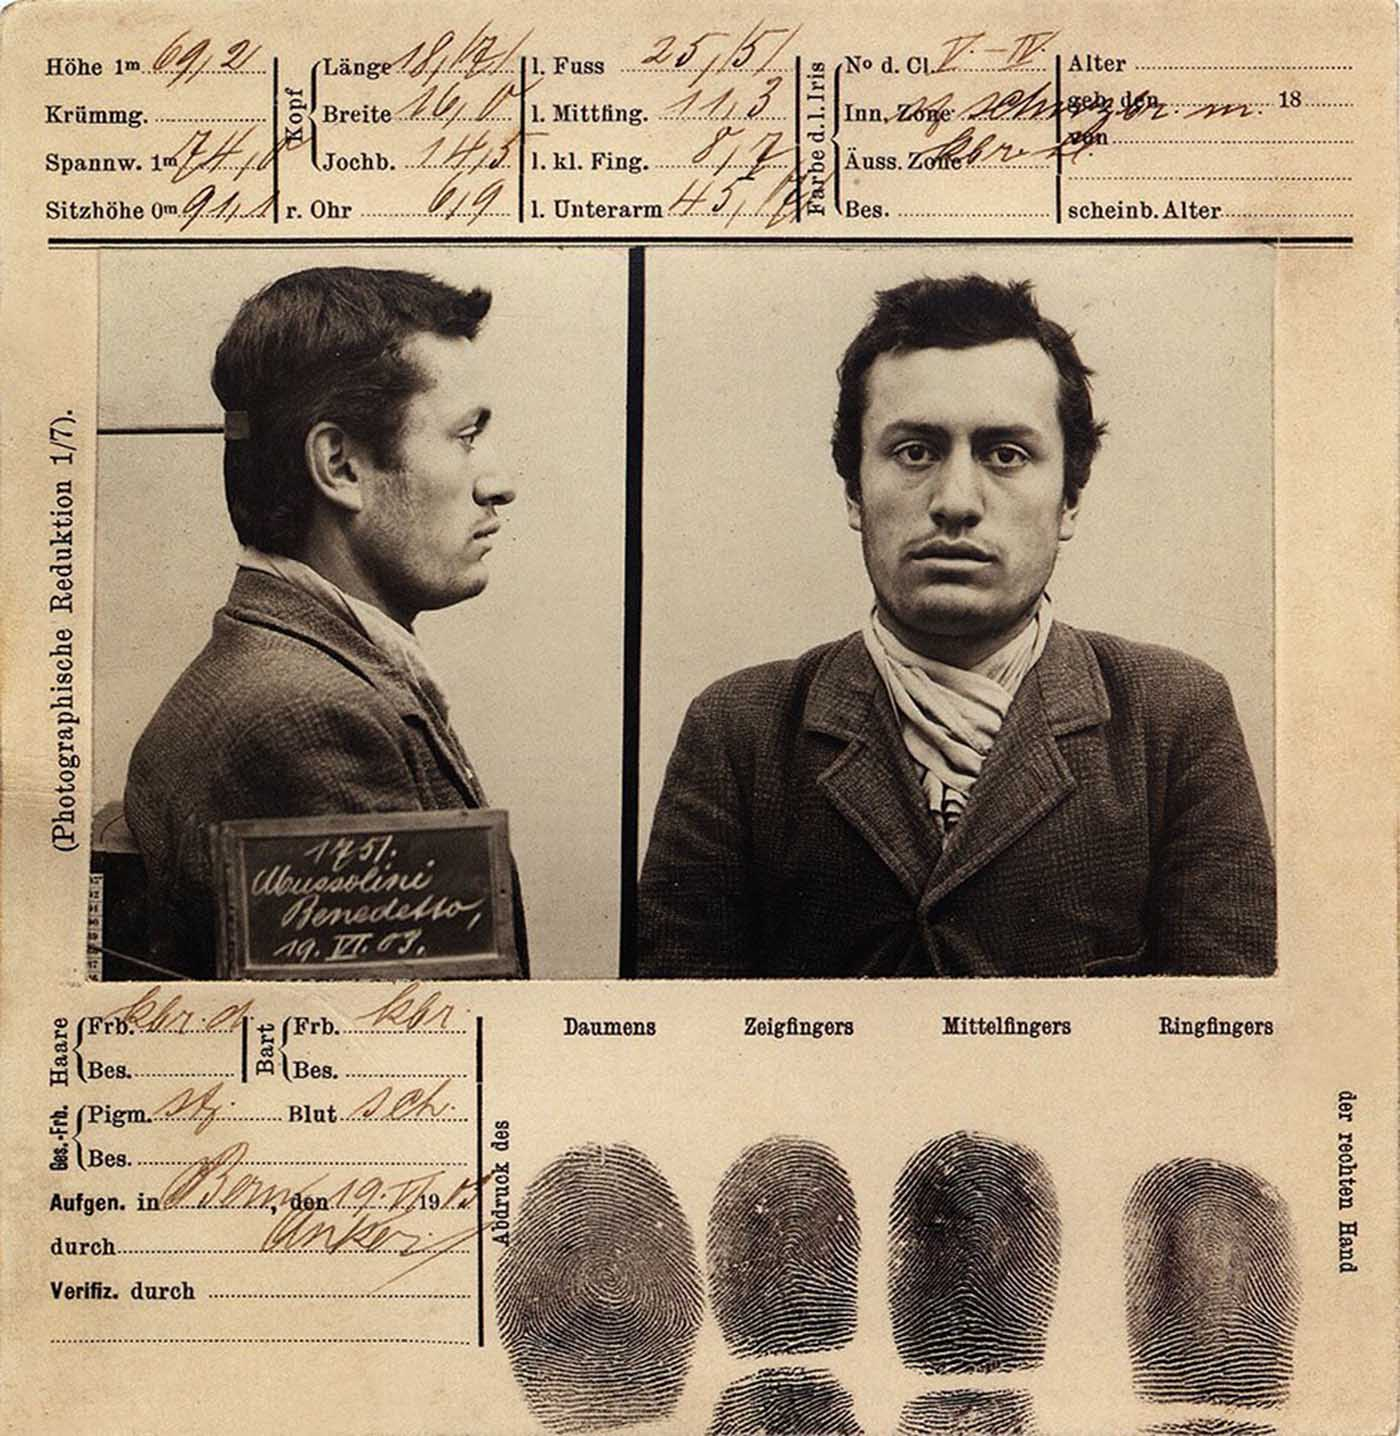 Benito Mussolini's mug shot taken on June 20, 1903 in Bern, Switzerland.